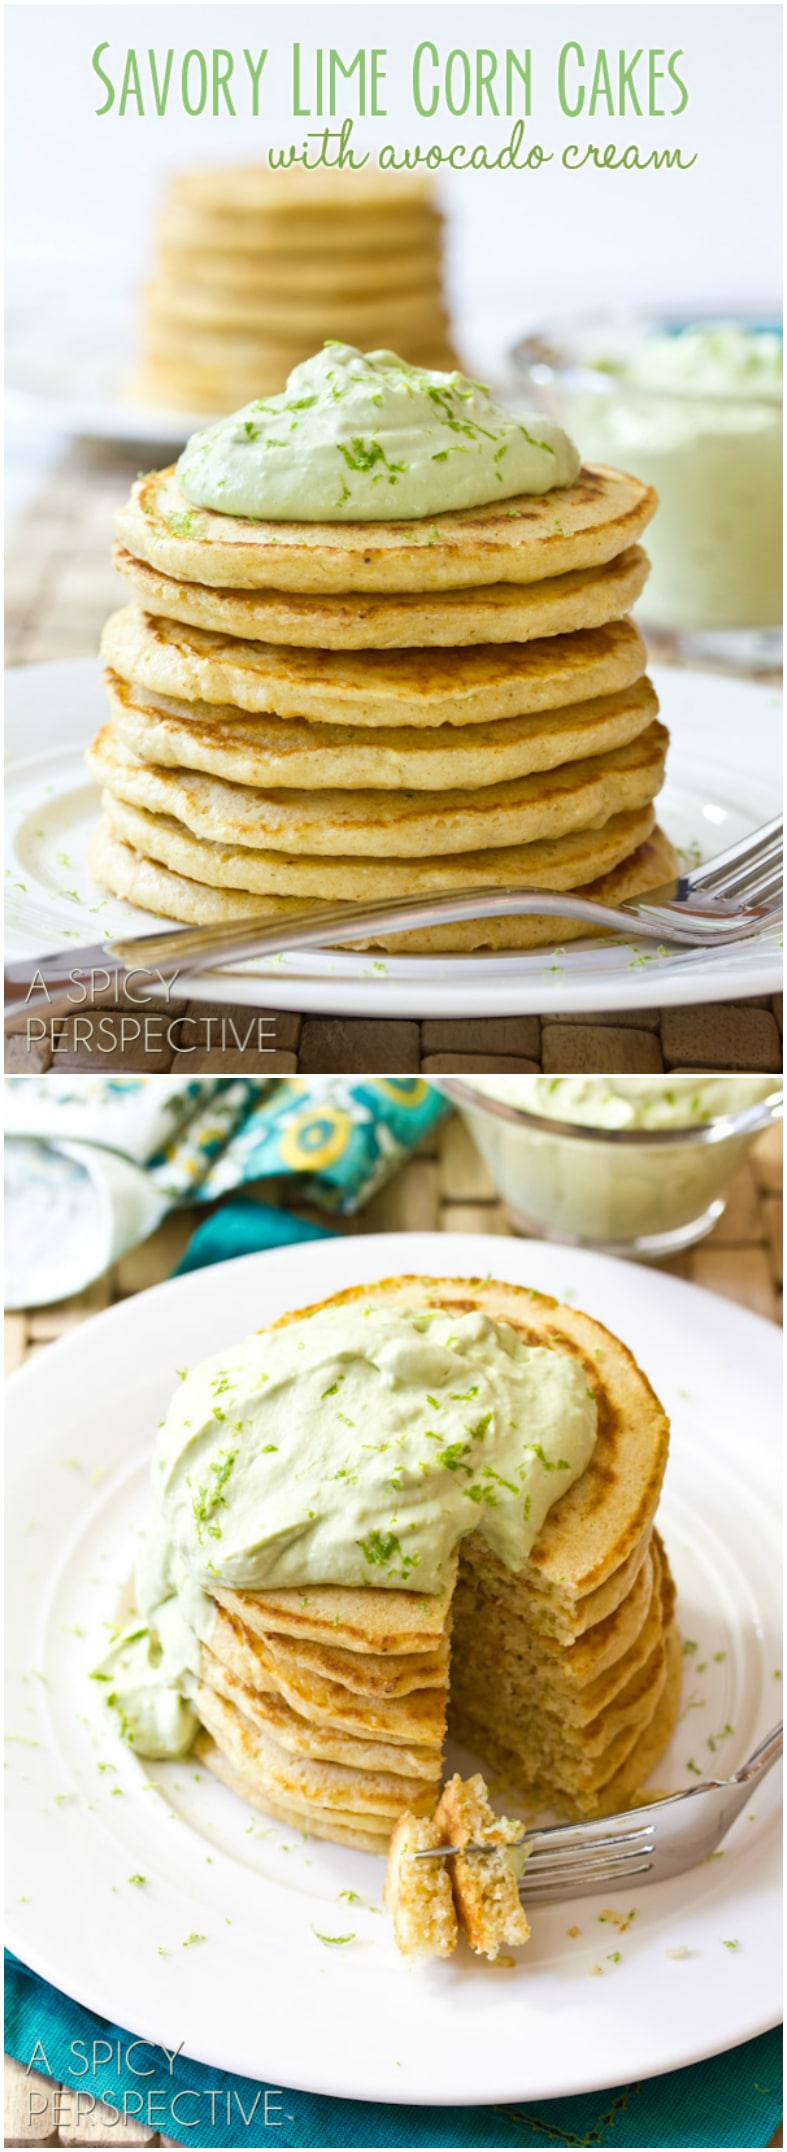 Savory Corn Cakes with Avocado Cream | ASpicyPerspective.com #avocado #breakfast #guacamole #savory